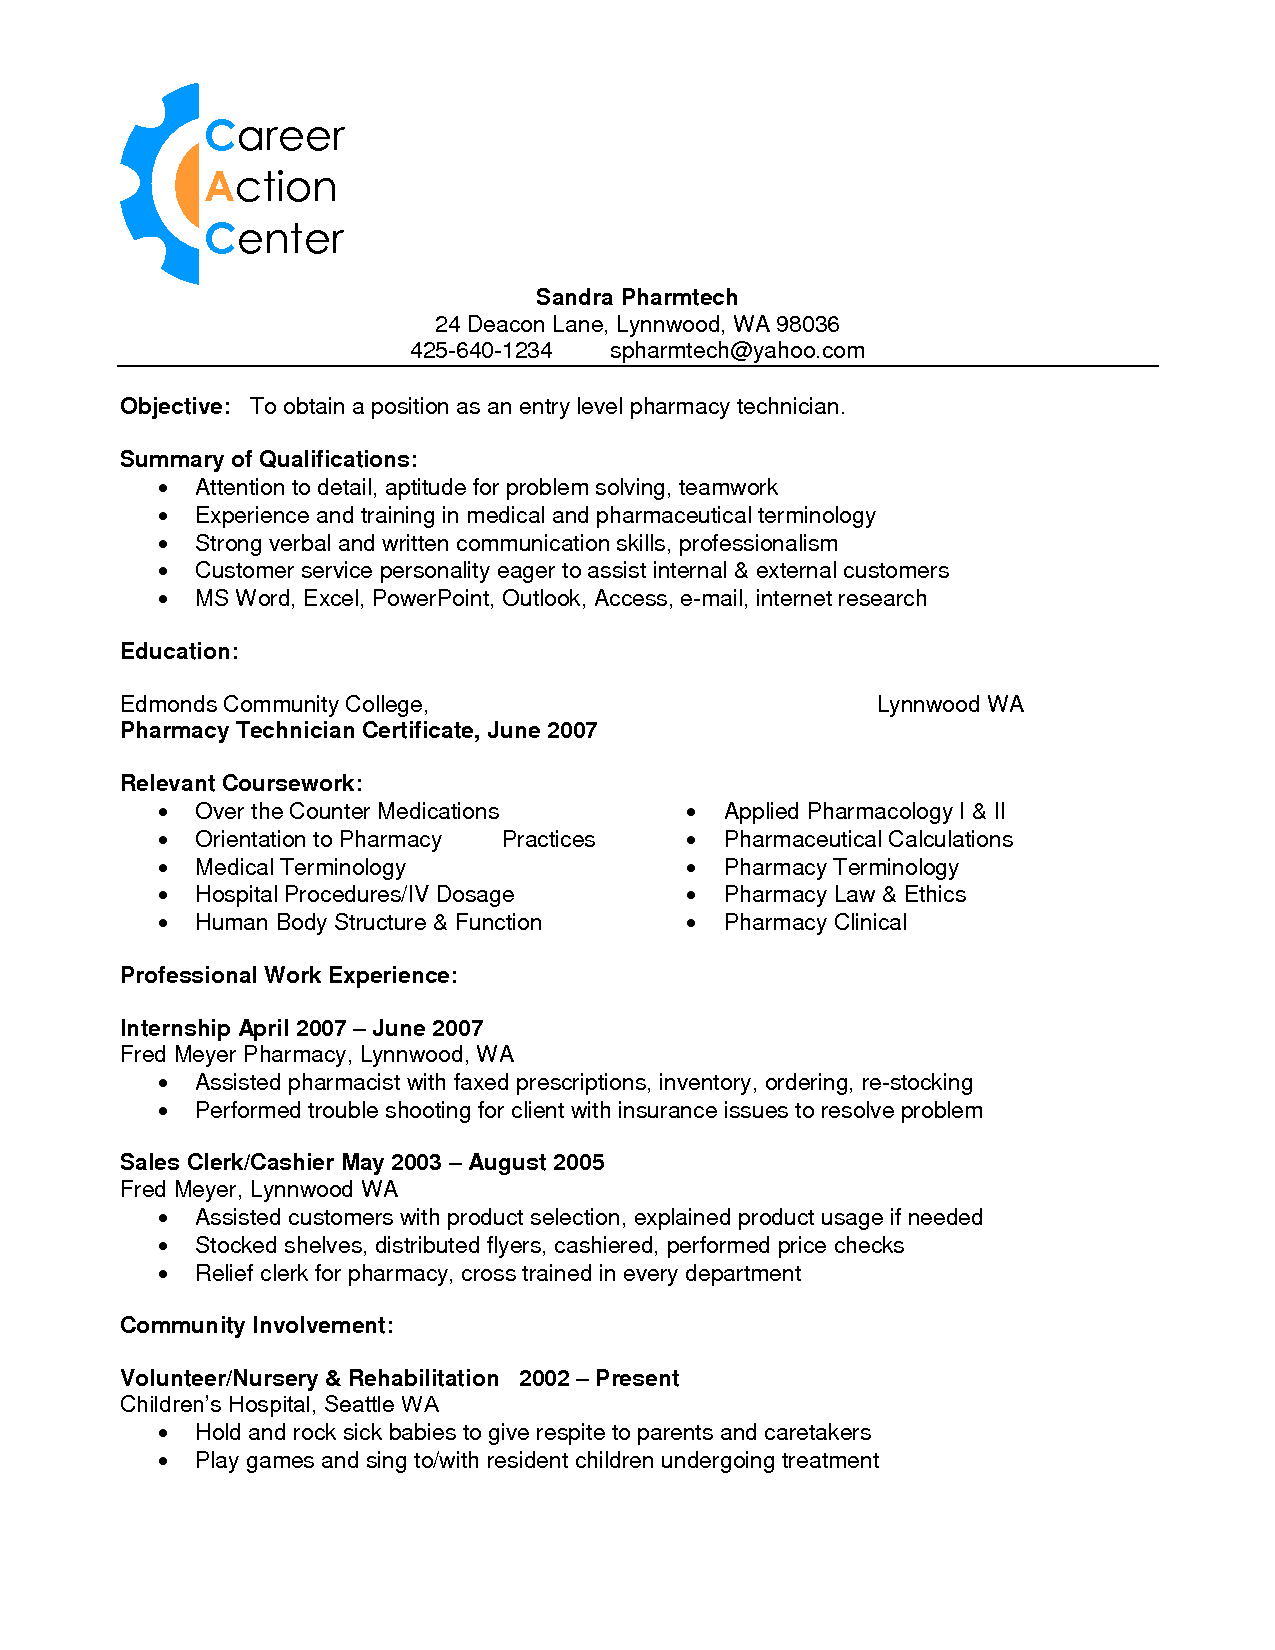 Sample Resume For Bank Teller At Entry Level   Http://www.resumecareer  Objective For Resume Entry Level